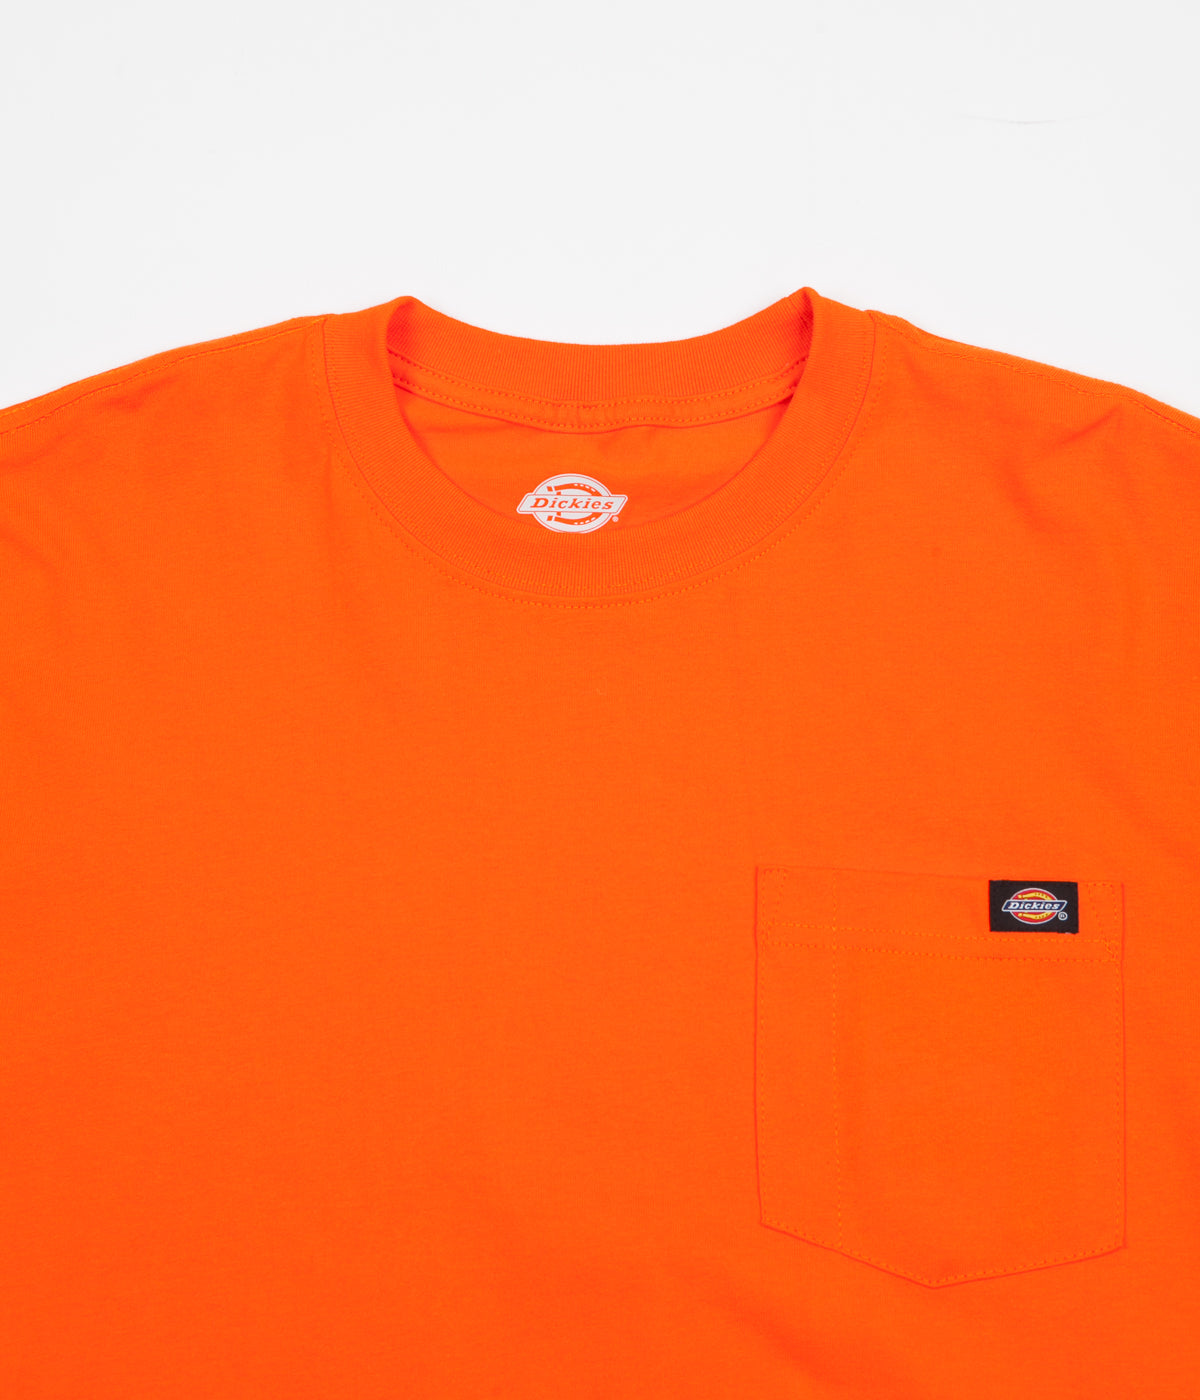 Dickies Long Sleeve Pocket T-Shirt - Orange